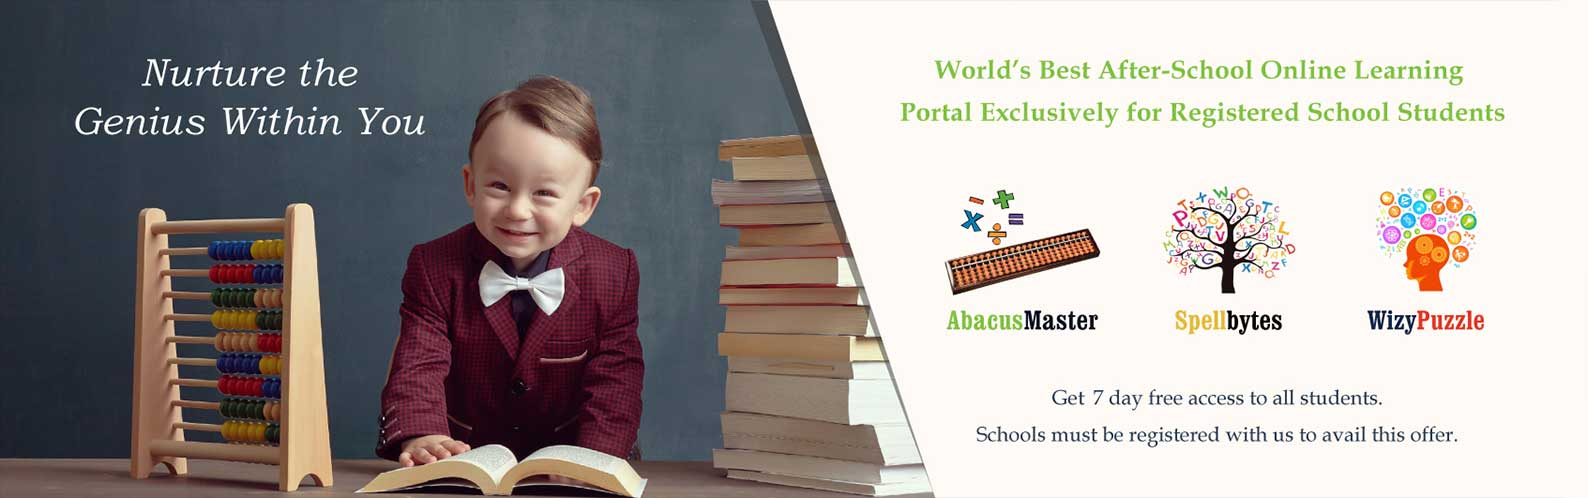 abacus education in all primary secondary kindergarten schools to improve skills of students